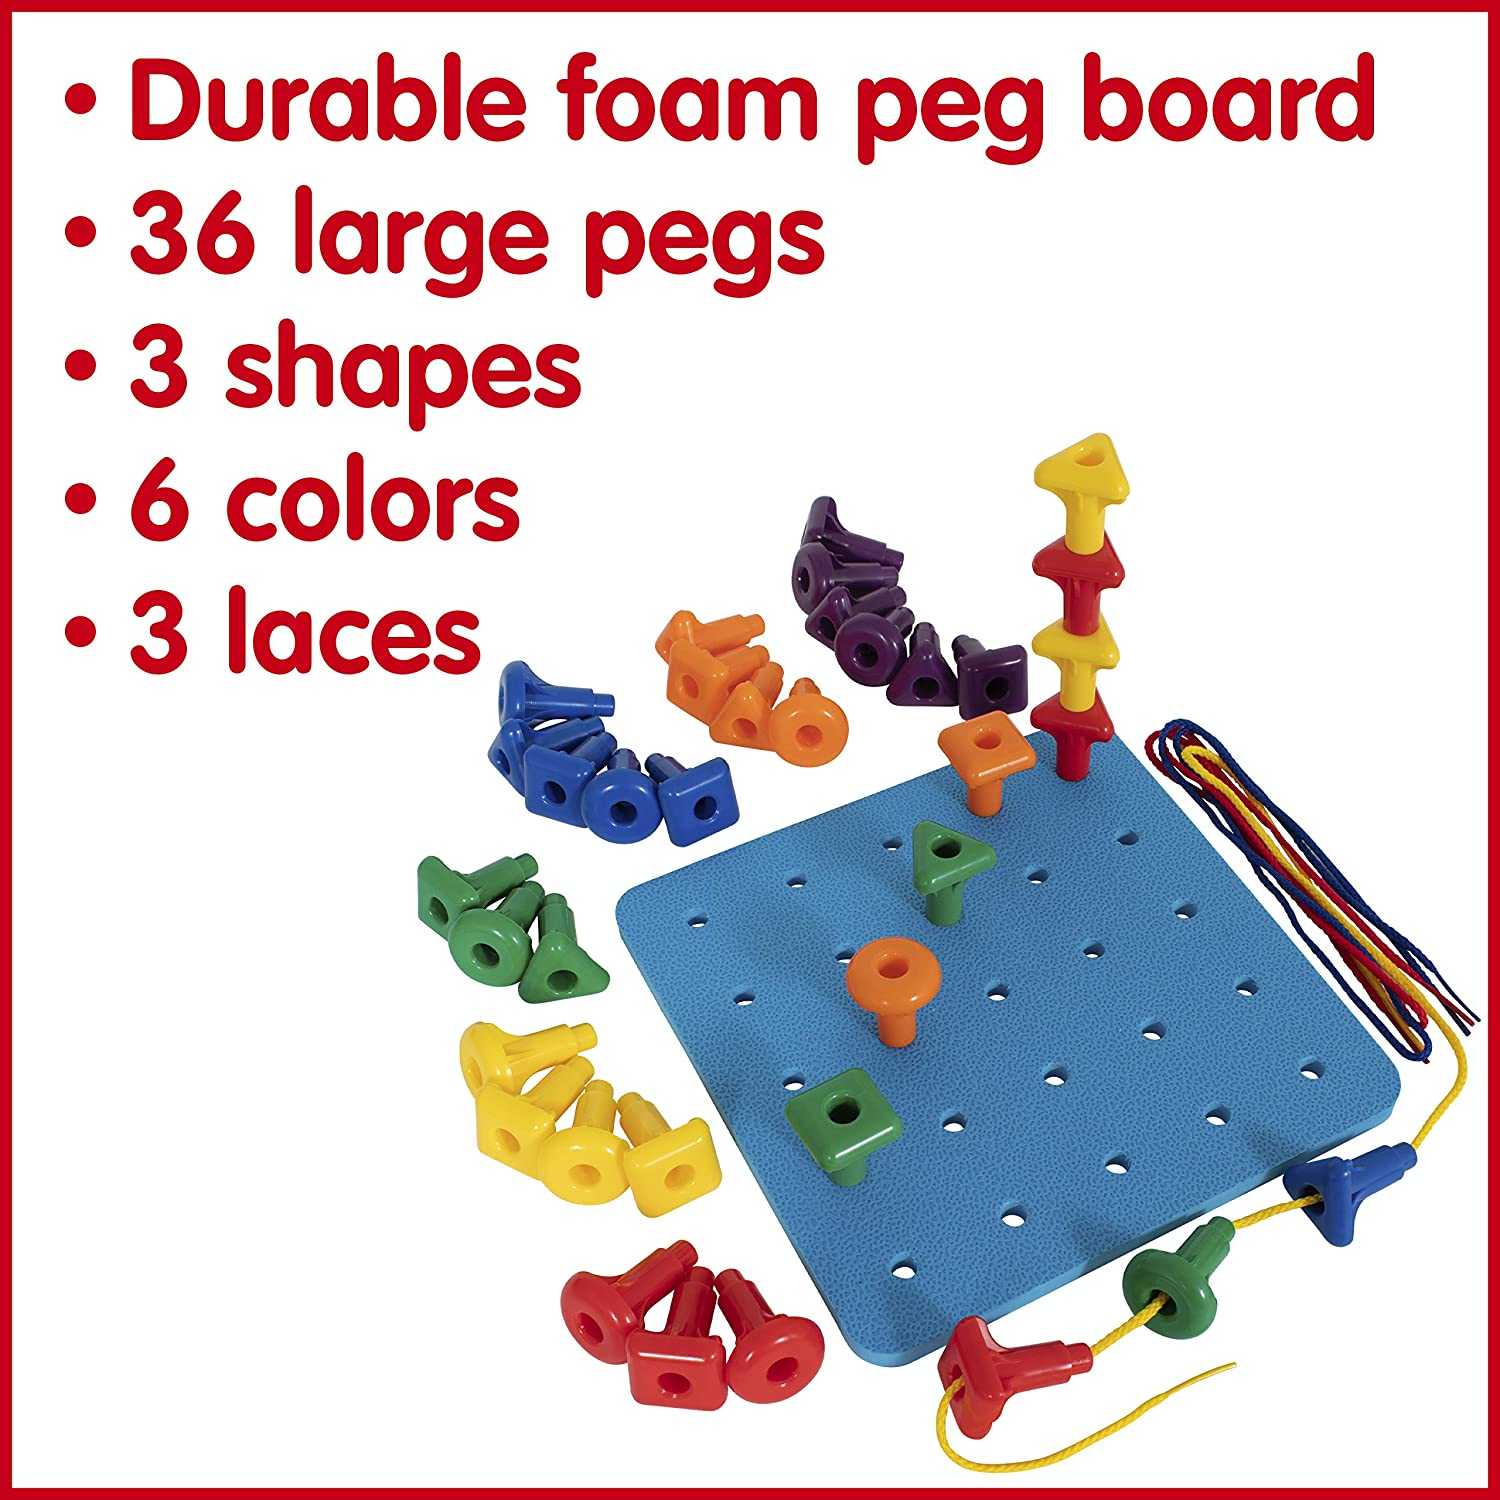 Homeschool Supplies for Preschool Activities 36 Pegs in 3 Shapes Ages 18m and up edxeducation Geo Pegs and Peg Board Set 6 Colors and 3 Laces